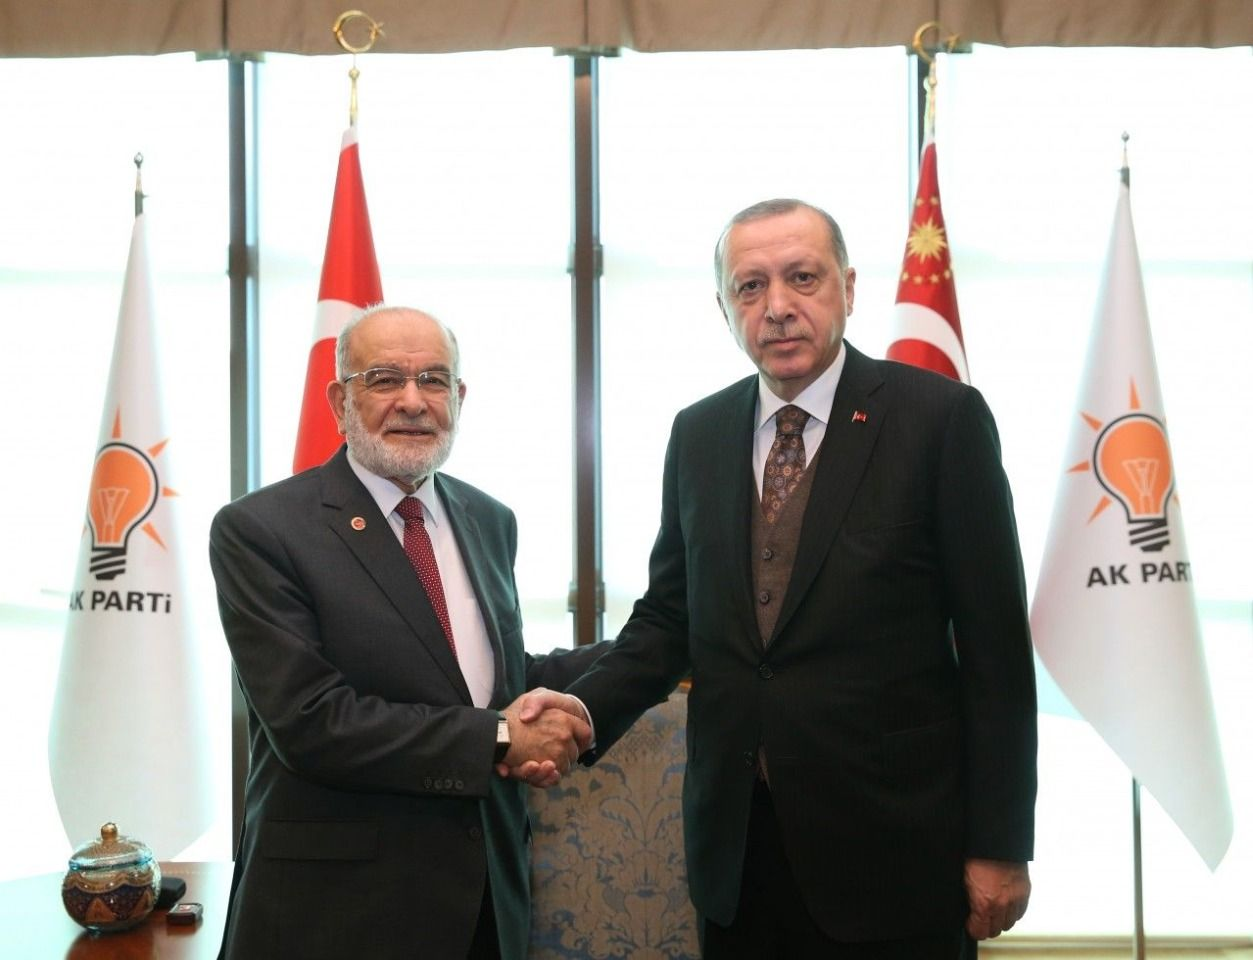 Temel Karamollaoğlu invited to Erdogans oath ceremony